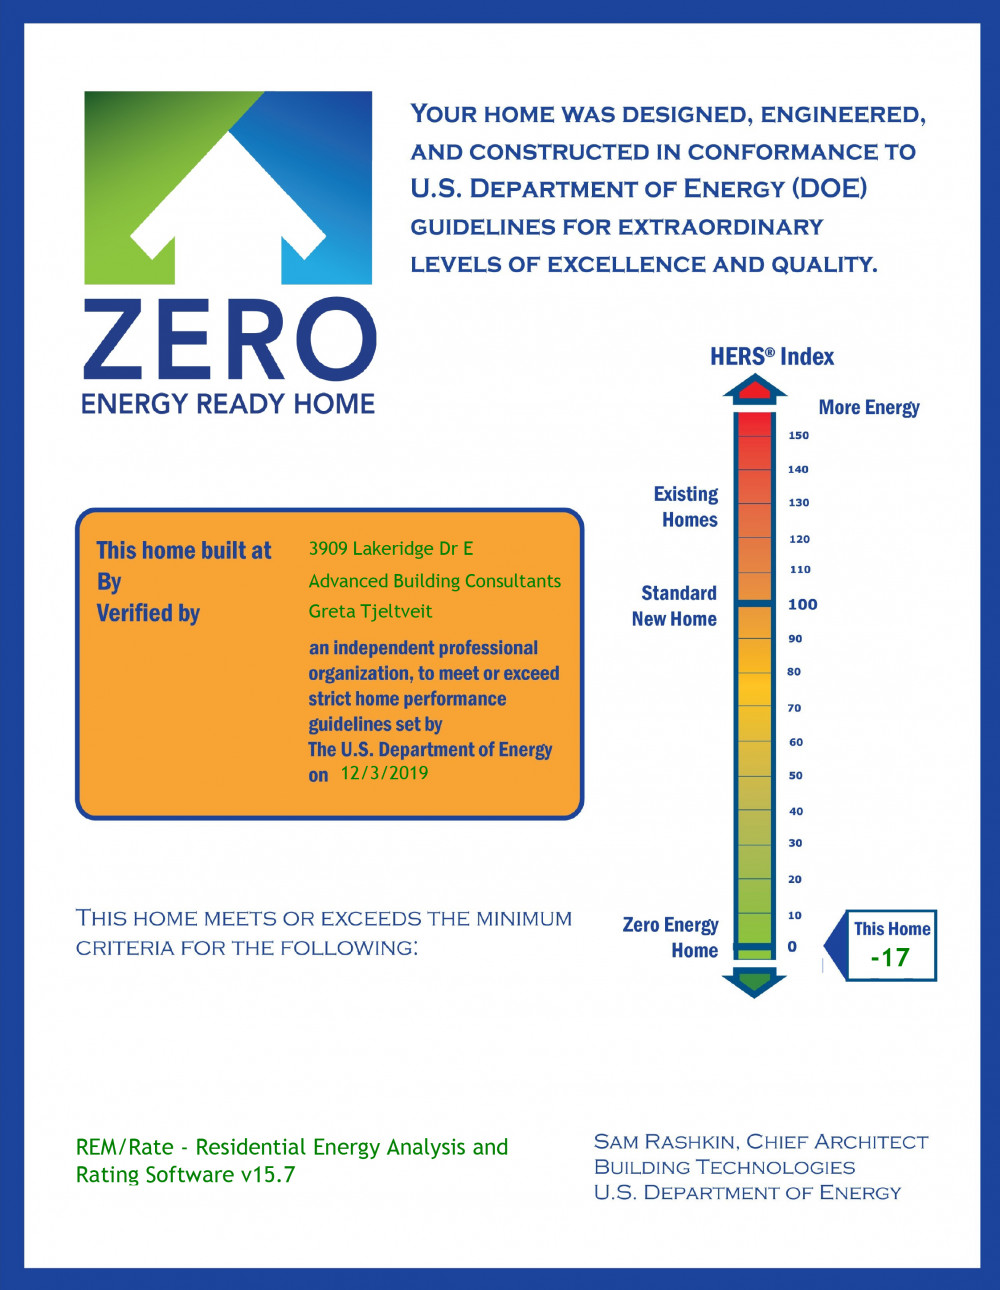 Coeur d'Alene Architect's Journal - HERS Index:  The Home Energy Rating System